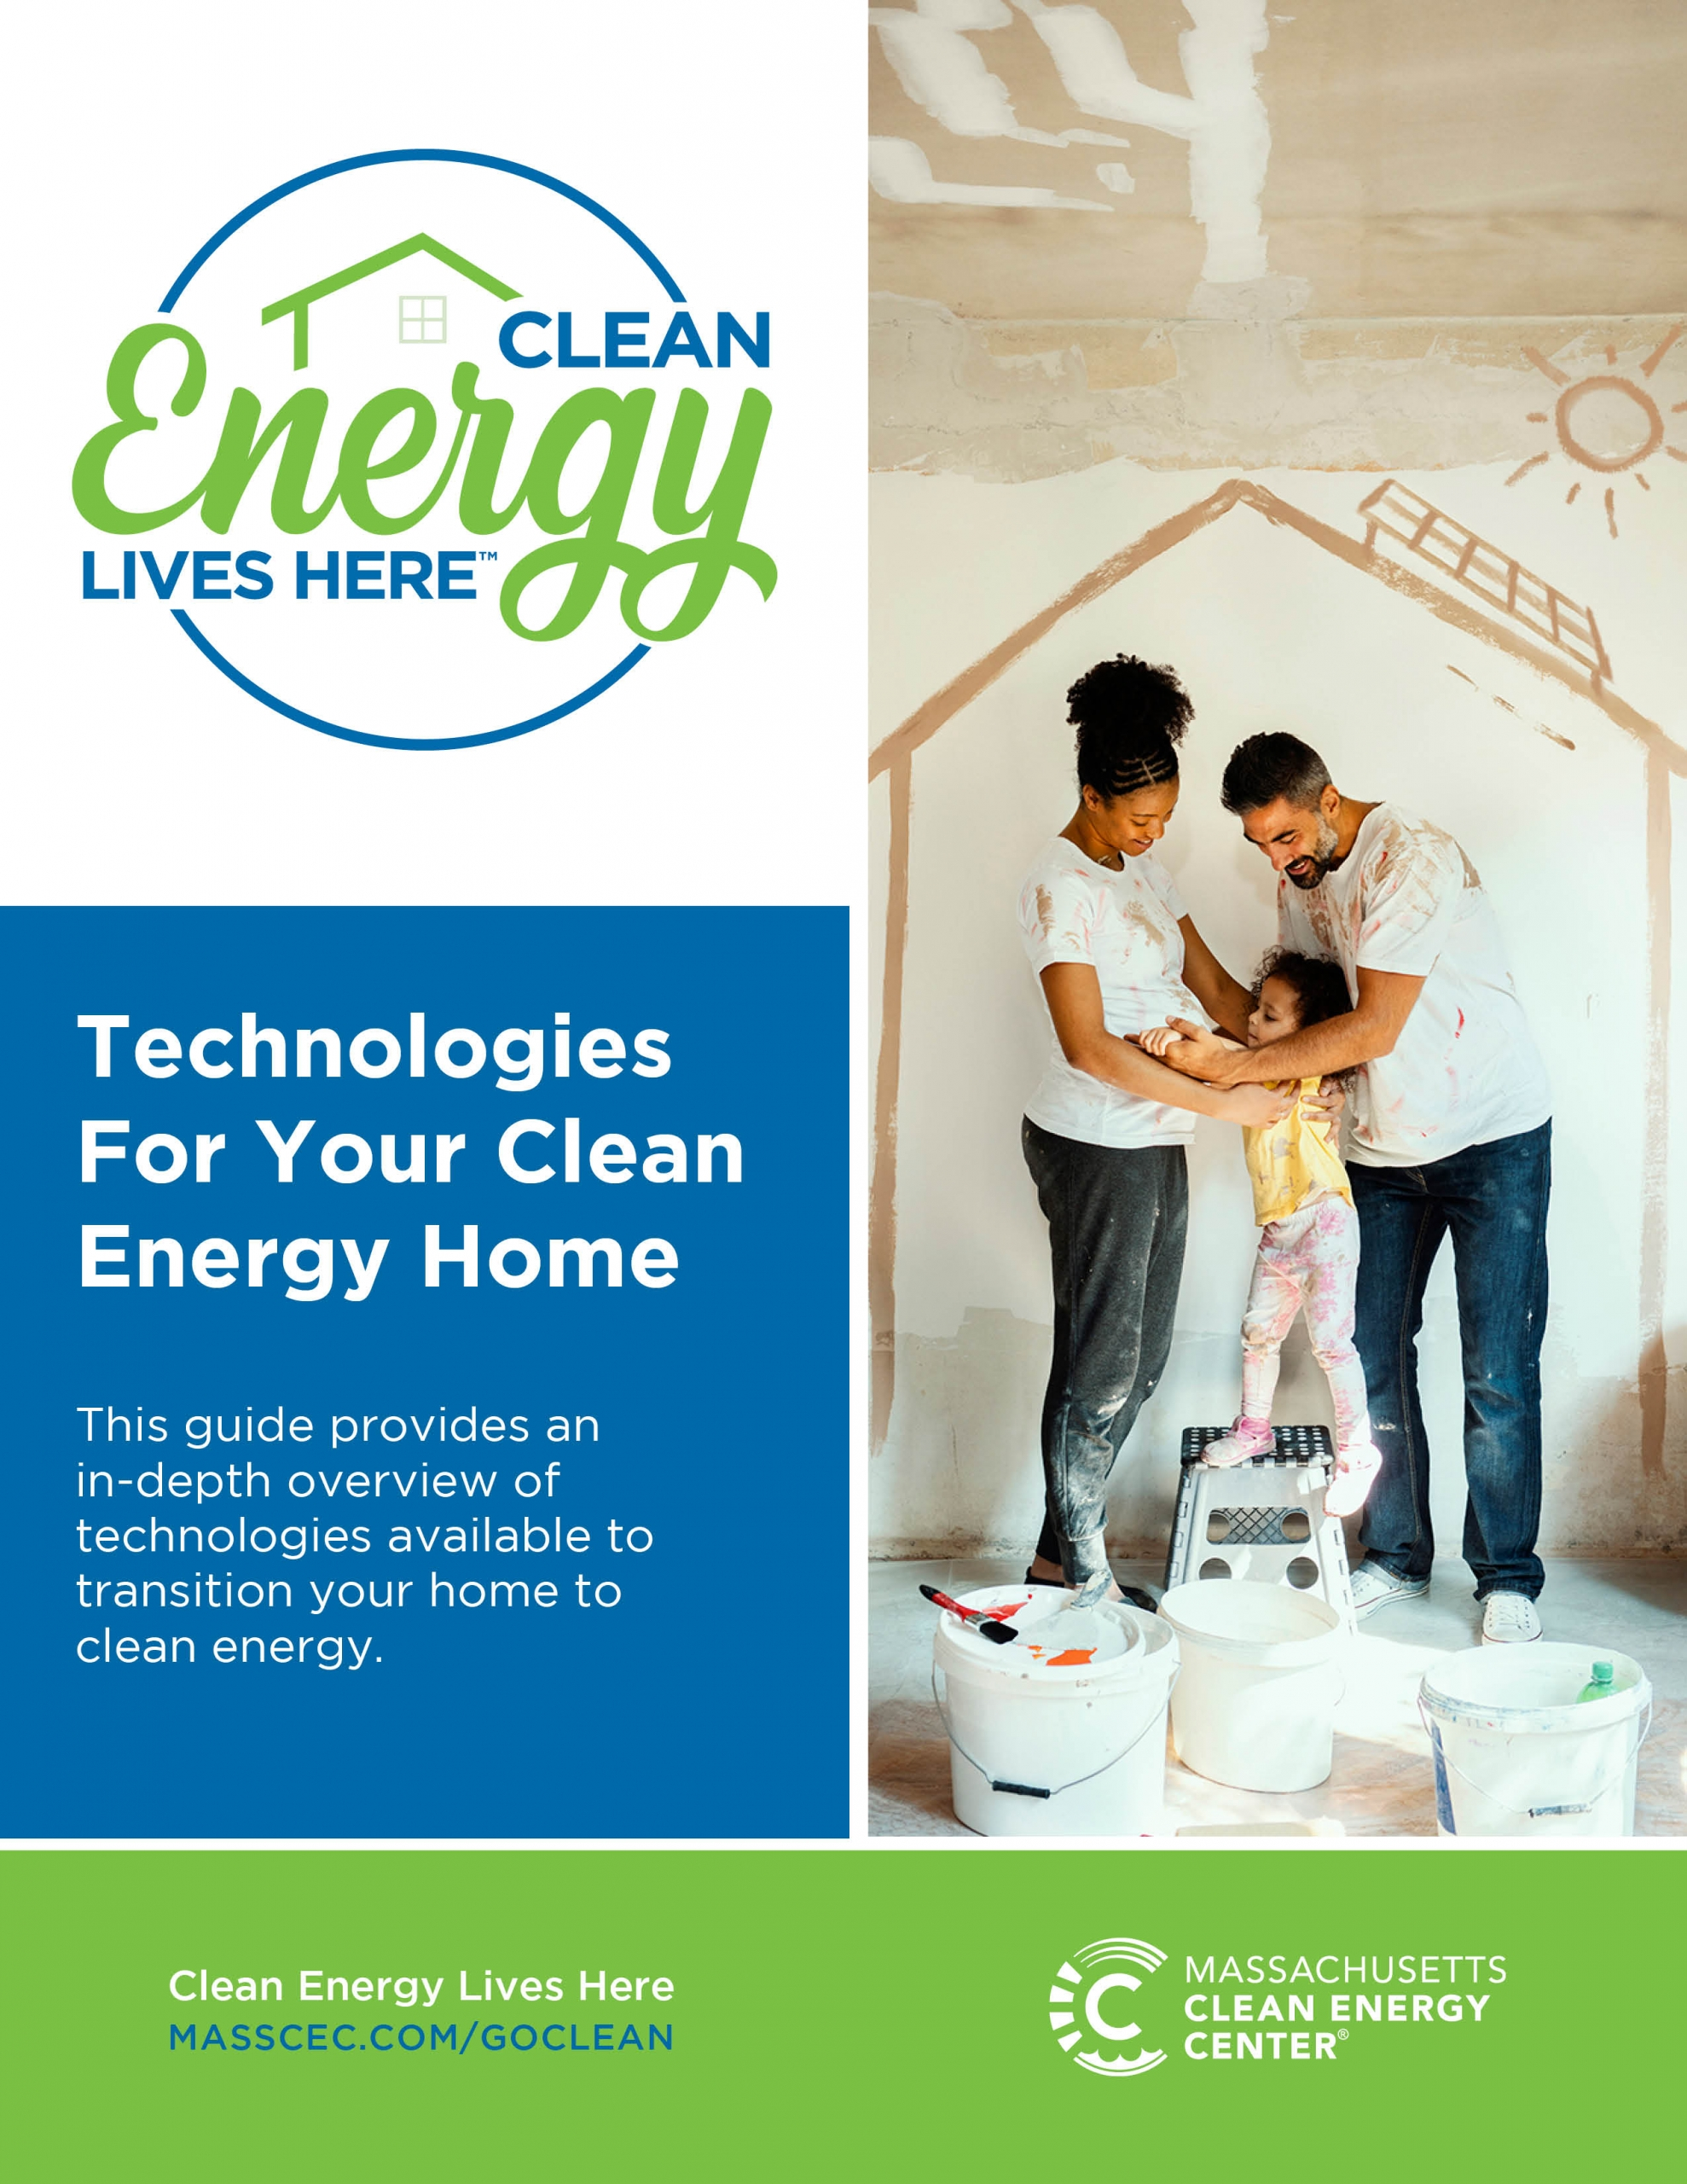 Technologies For Your Clean Energy Home